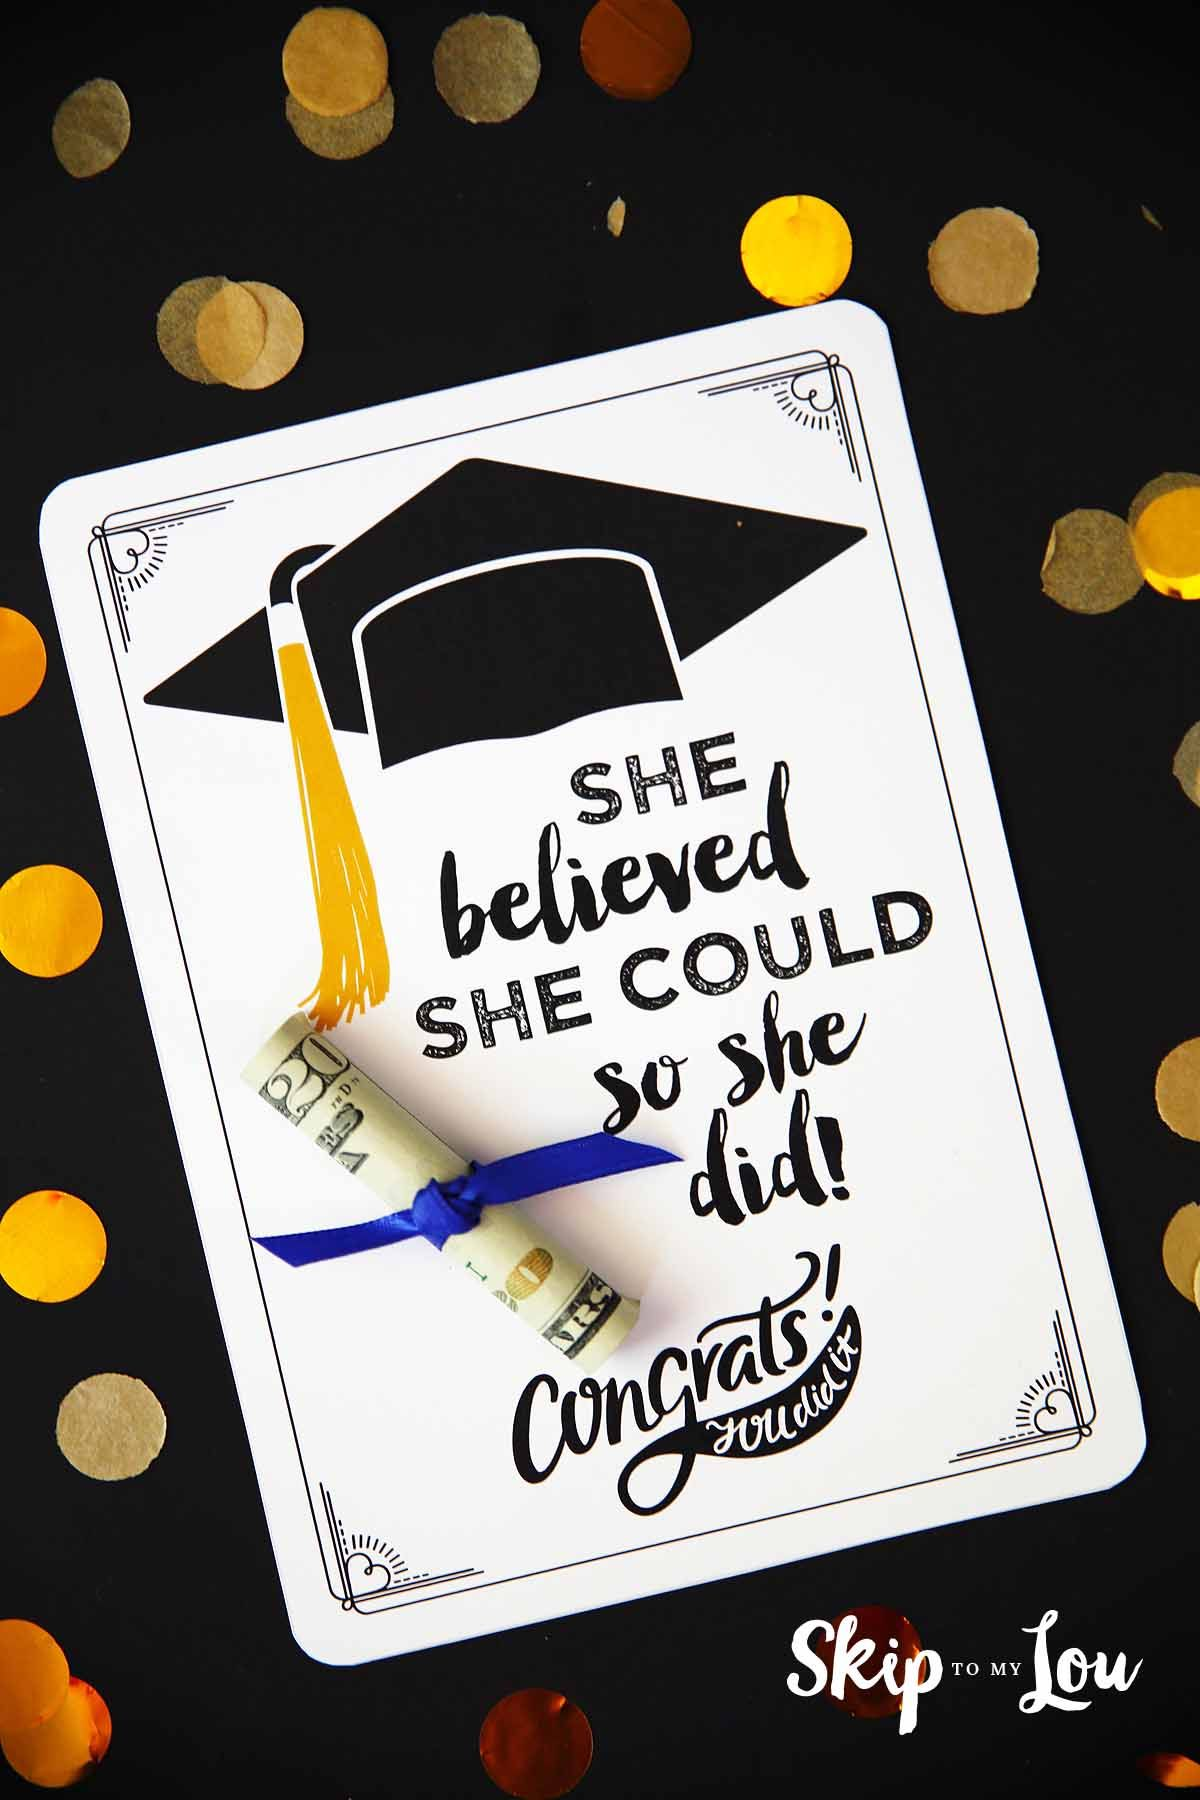 Free Graduation Cards With Positive Quotes And Cash Graduation